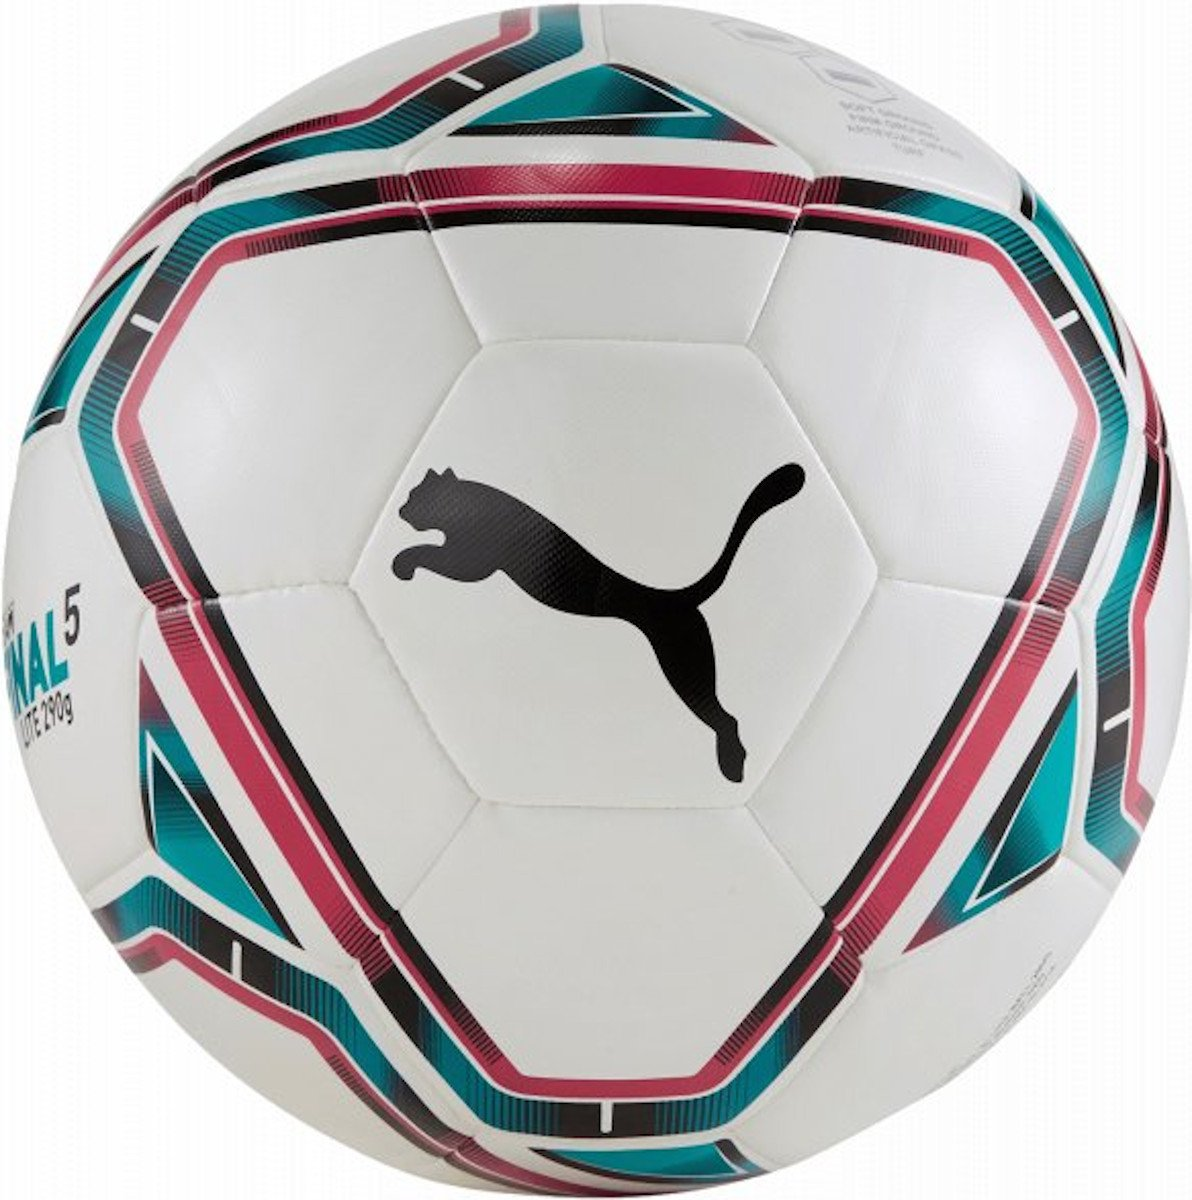 Ball Puma teamFINAL 21 Lite Ball 290g